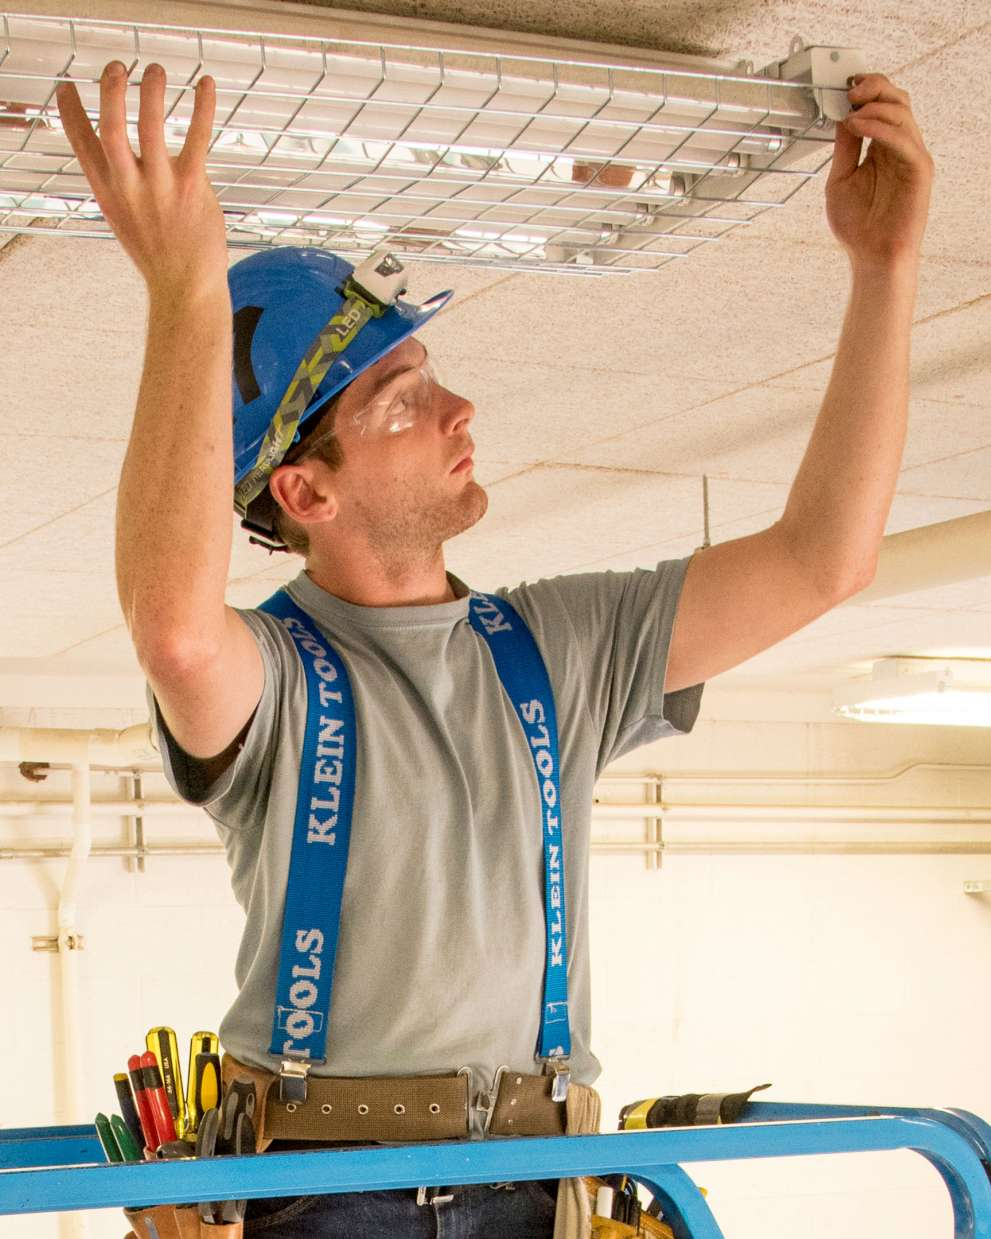 A Sign, Billboard, and Display worker installs a sign in a hallway